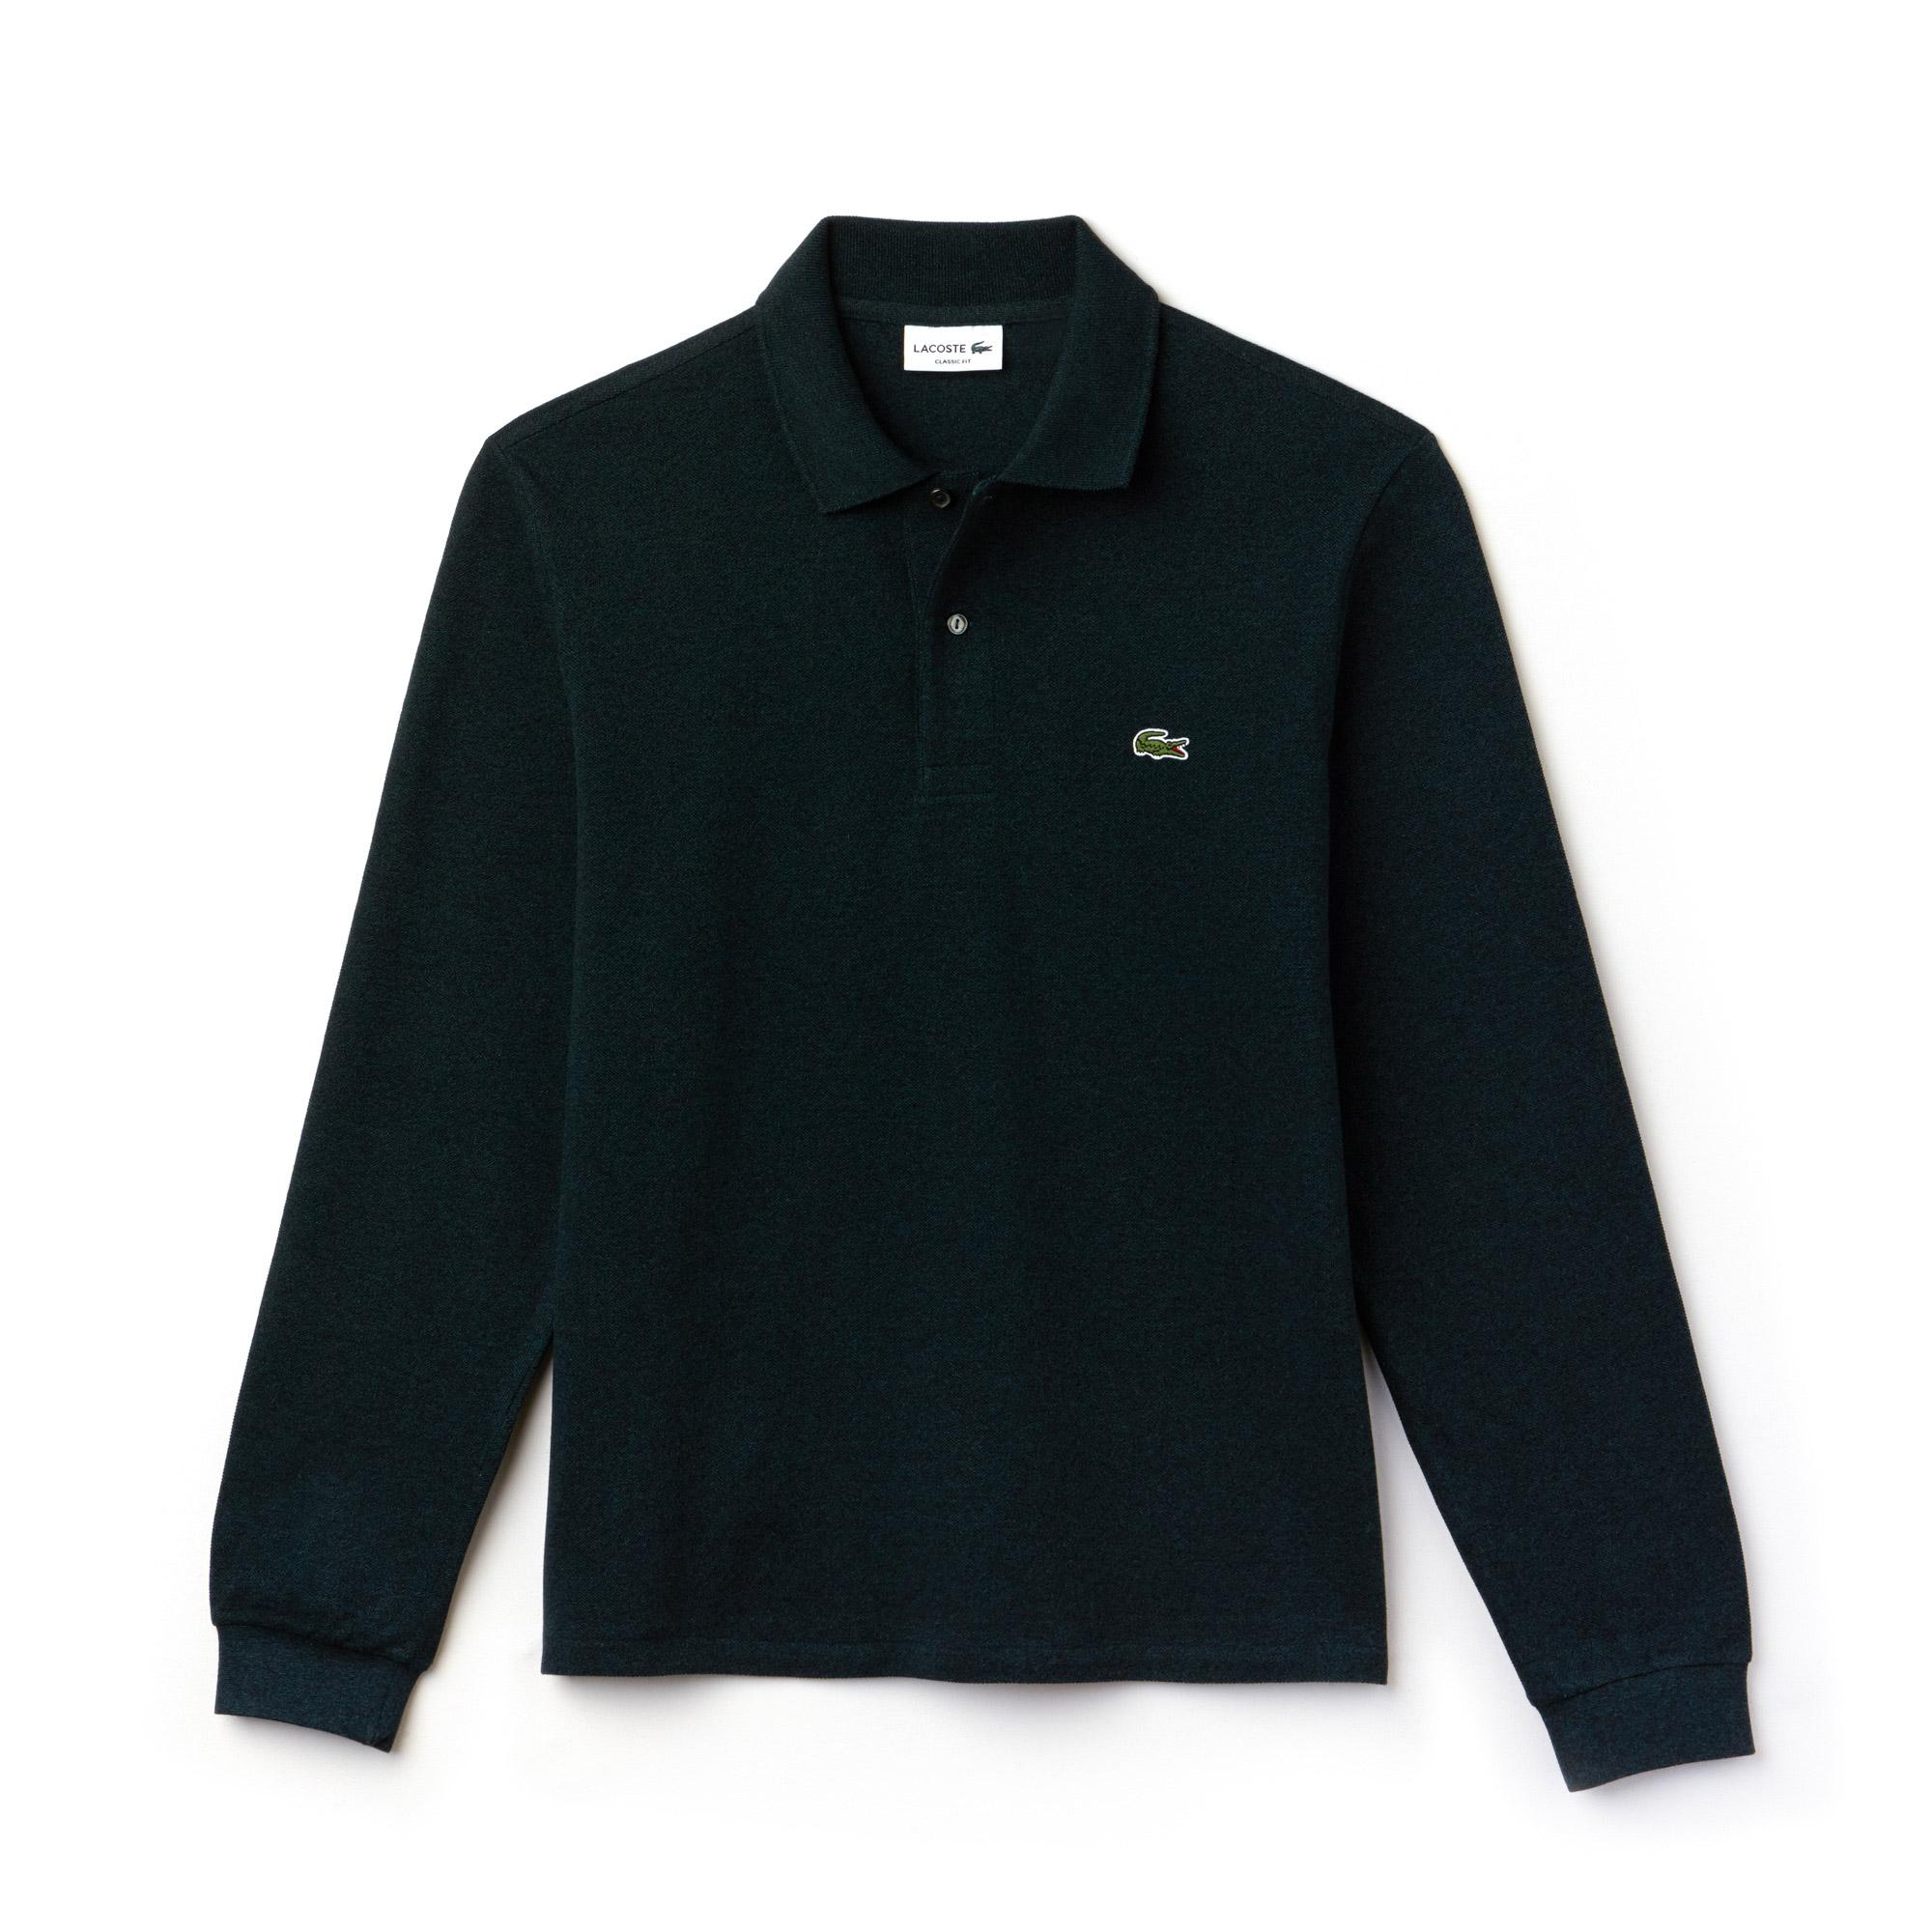 Lacoste Classic Fit Long Sleeve Polo in Marl Petit Piqué